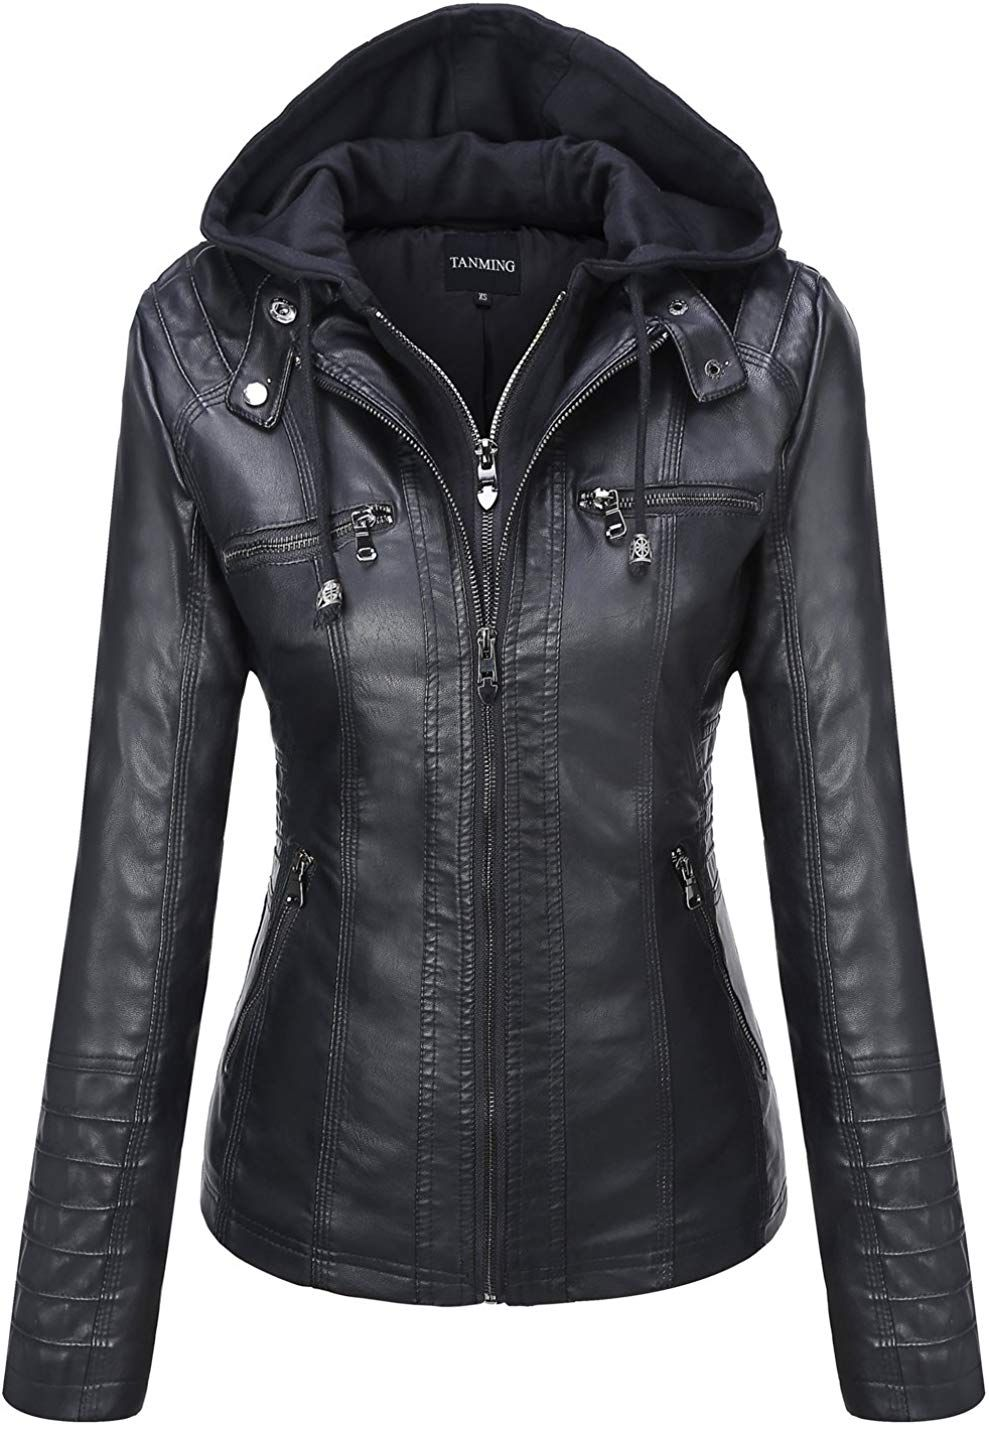 Tanming Women's Removable Hooded Faux Leather Jackets at